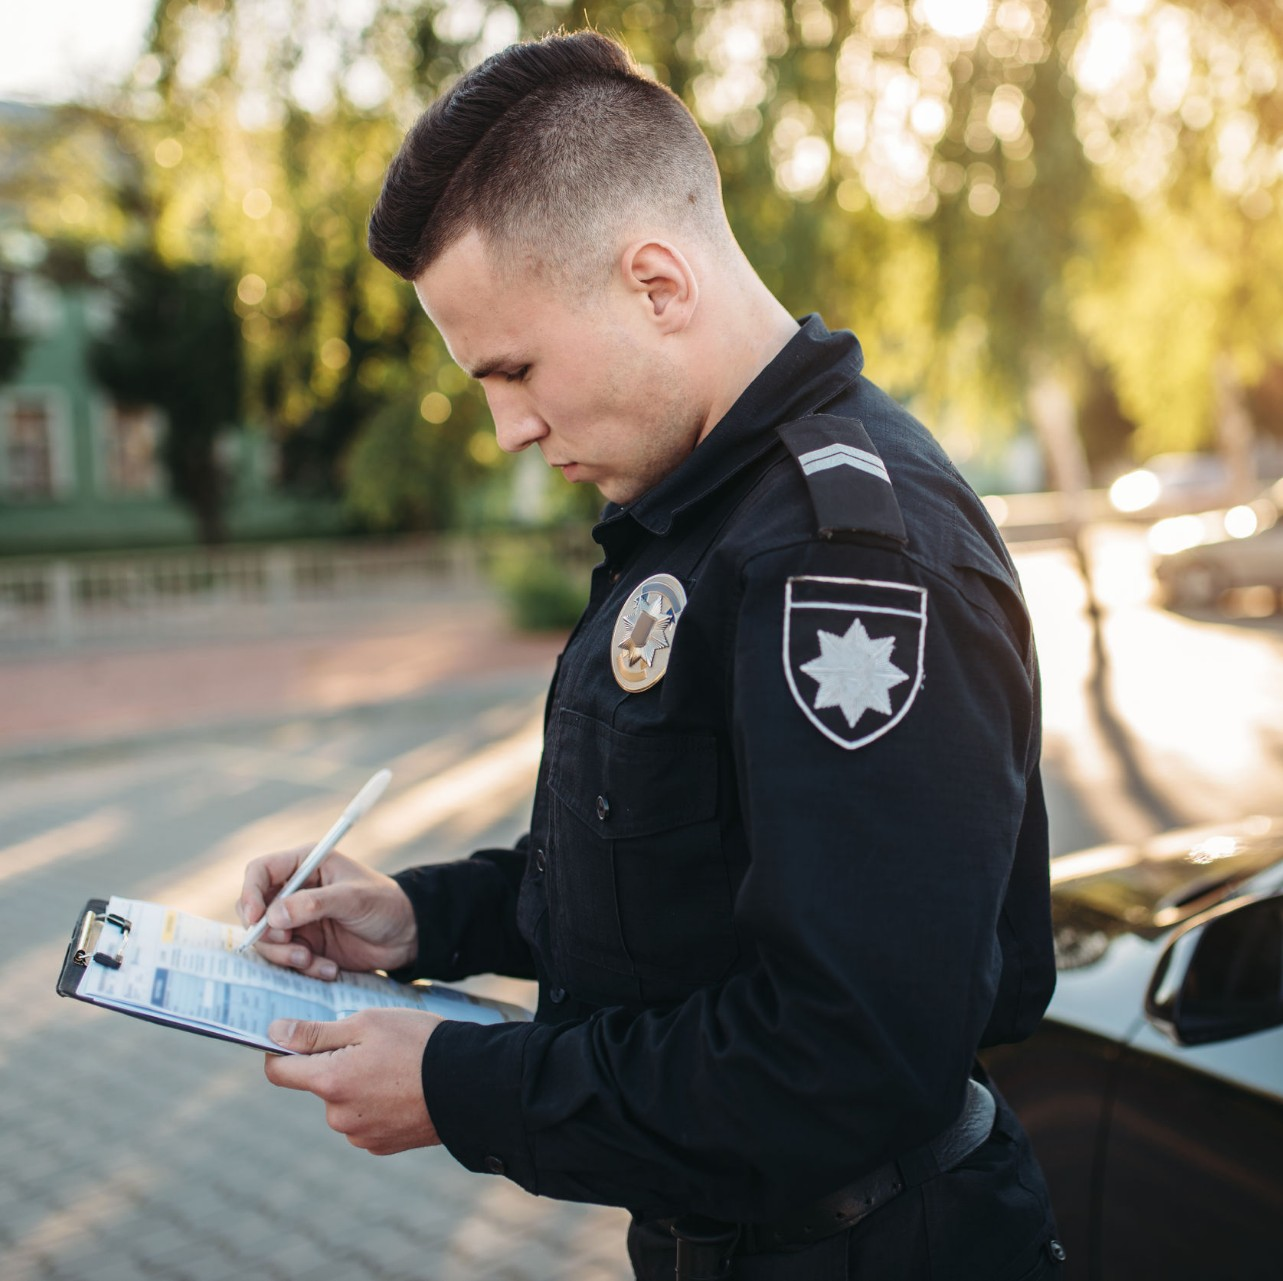 Get fast bail bonds for traffic citations